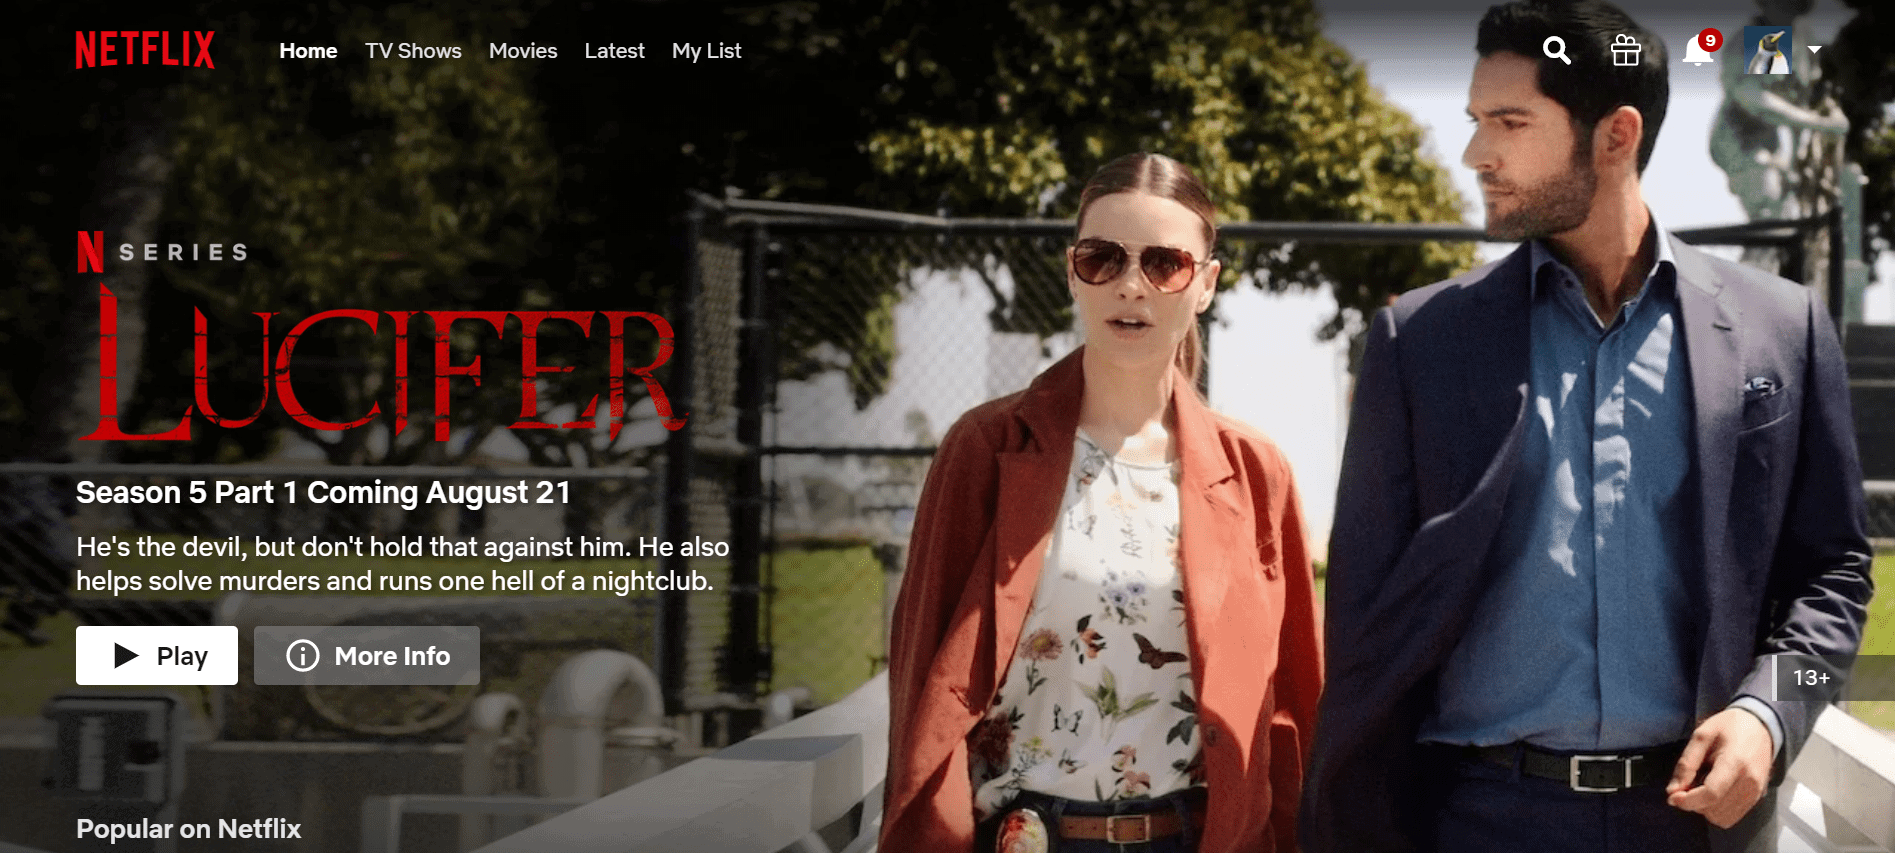 Netflix China Lucifer streamen